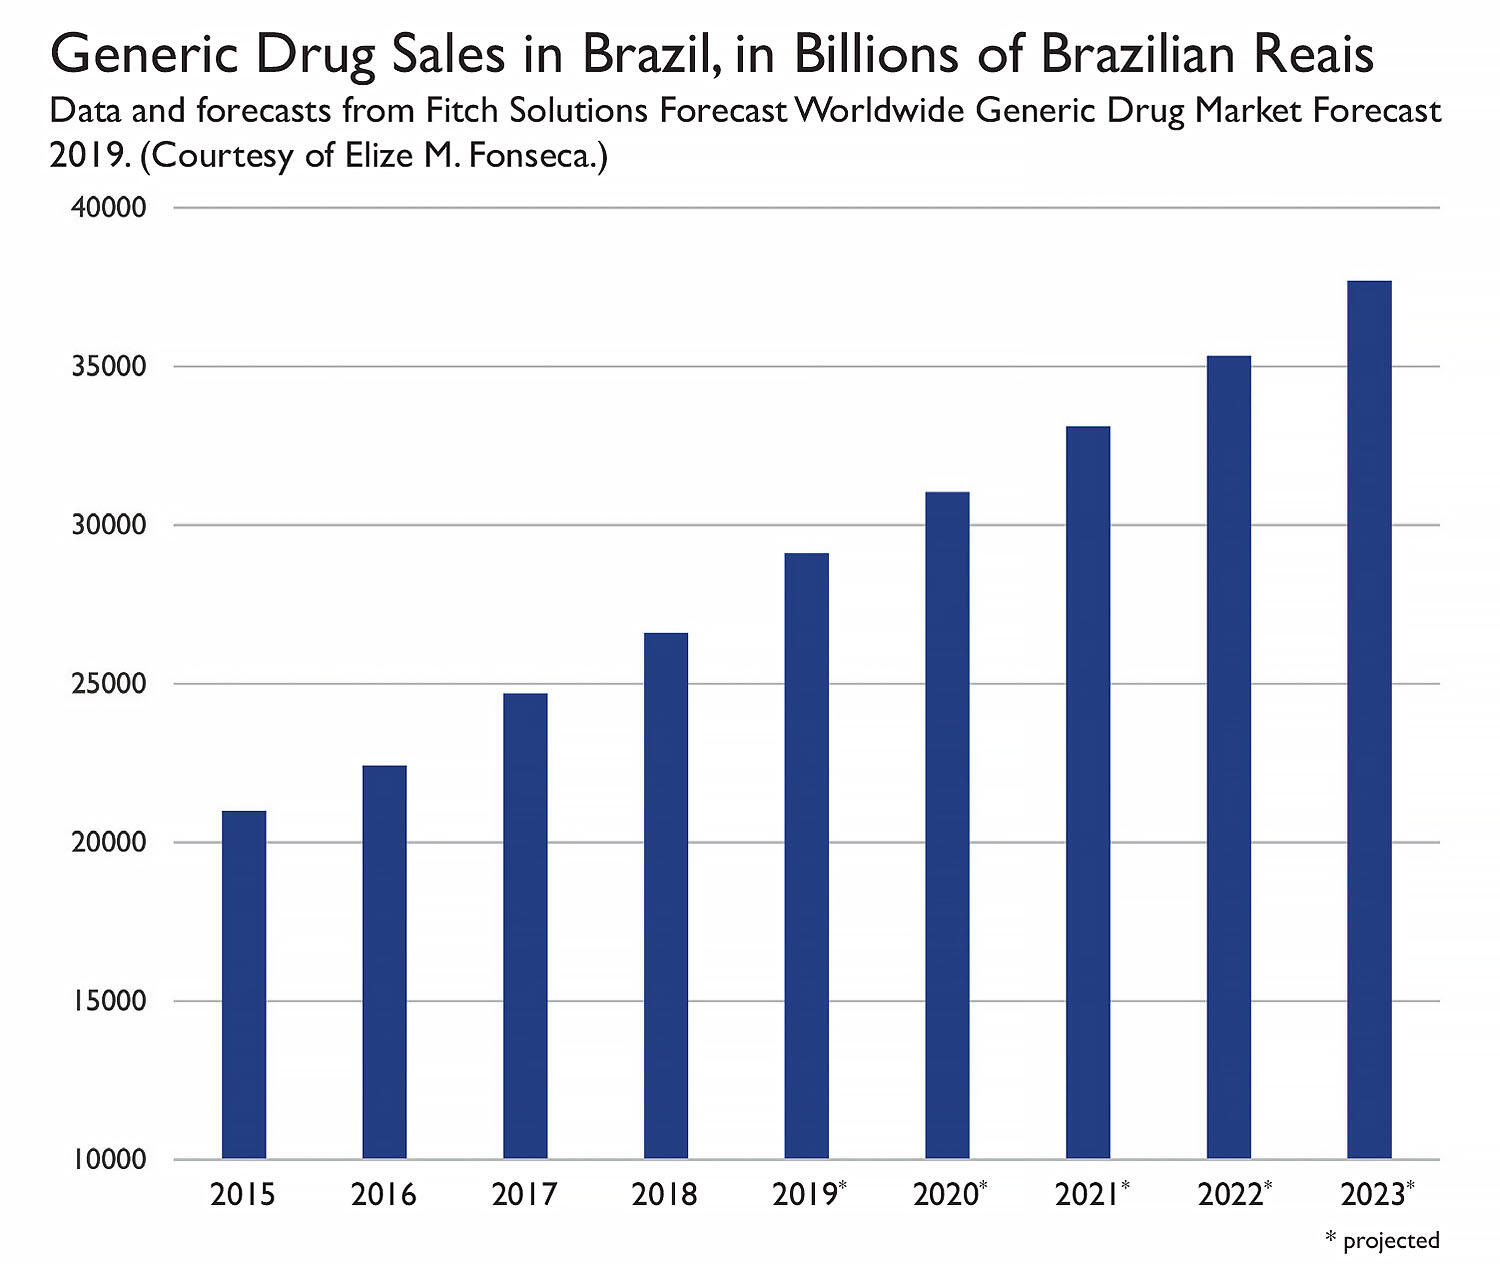 Generic Drug Sales in Brazil, in Billions of Brazilian Reais Data and forecasts from Fitch Solutions Forecast Worldwide Generic Drug Market Forecast 2019. (Courtesy of Elize M. Fonseca.)